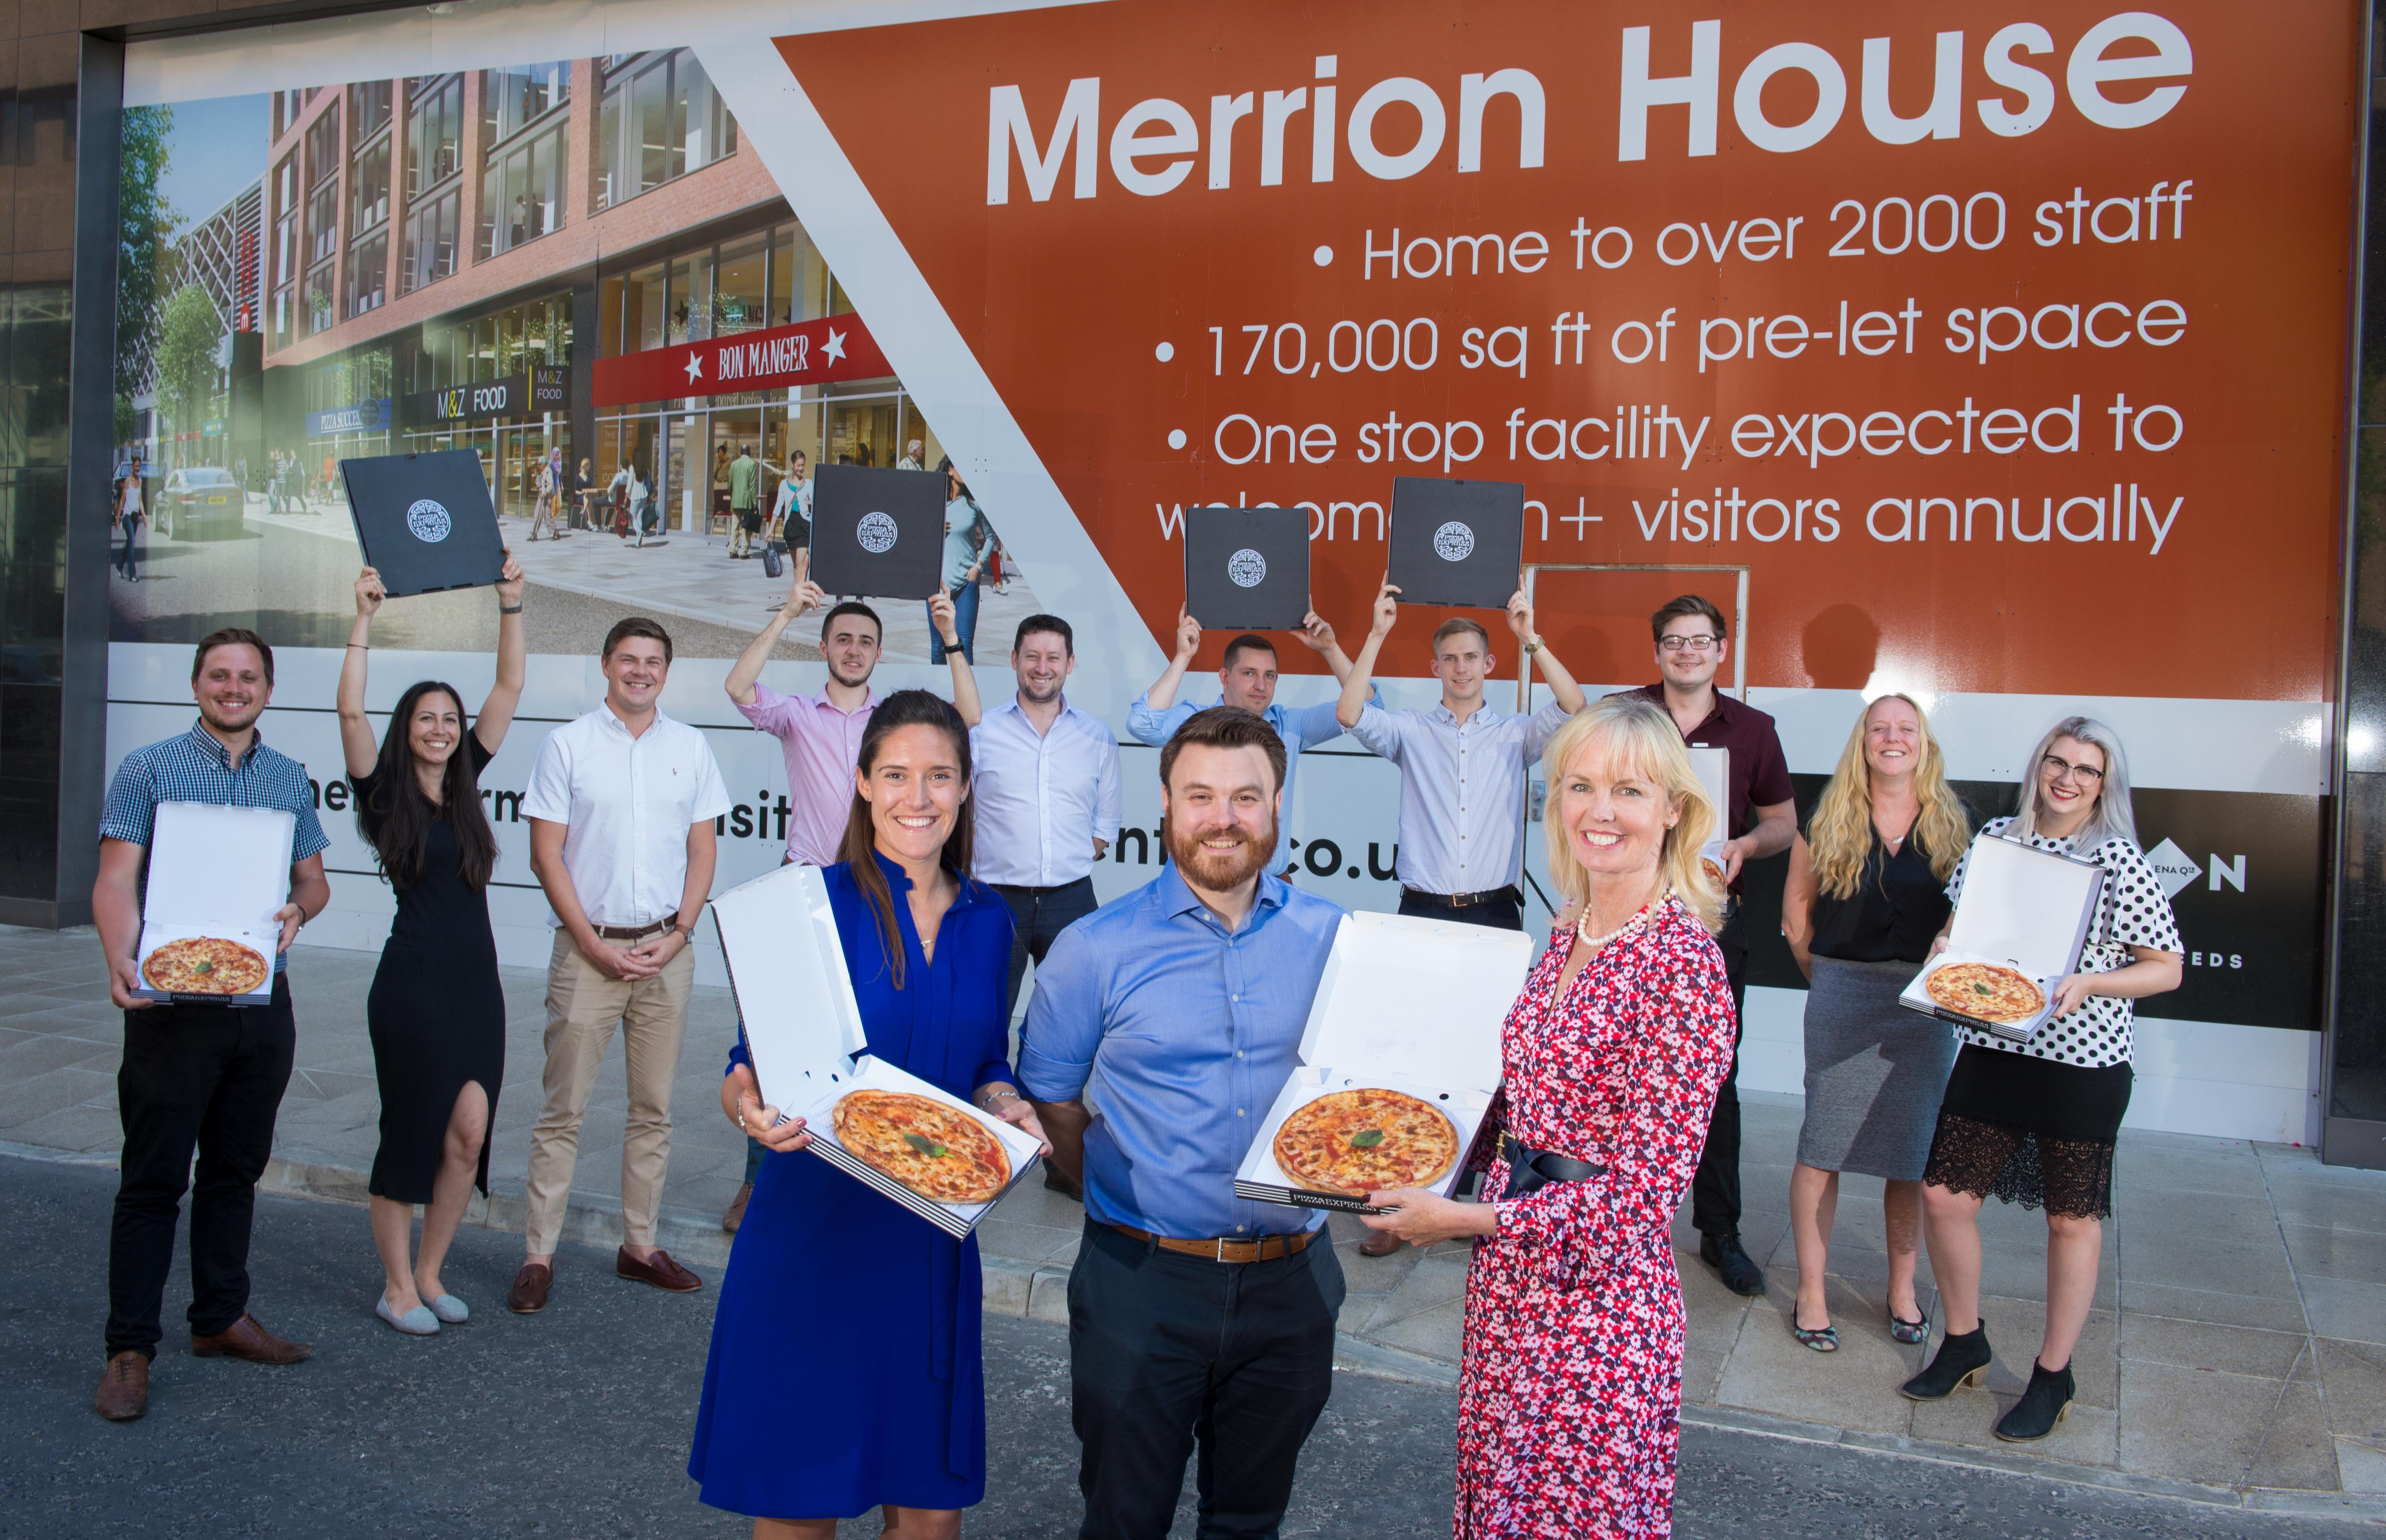 New Arena Quarter Eatery To Take A Pizza The Action At The